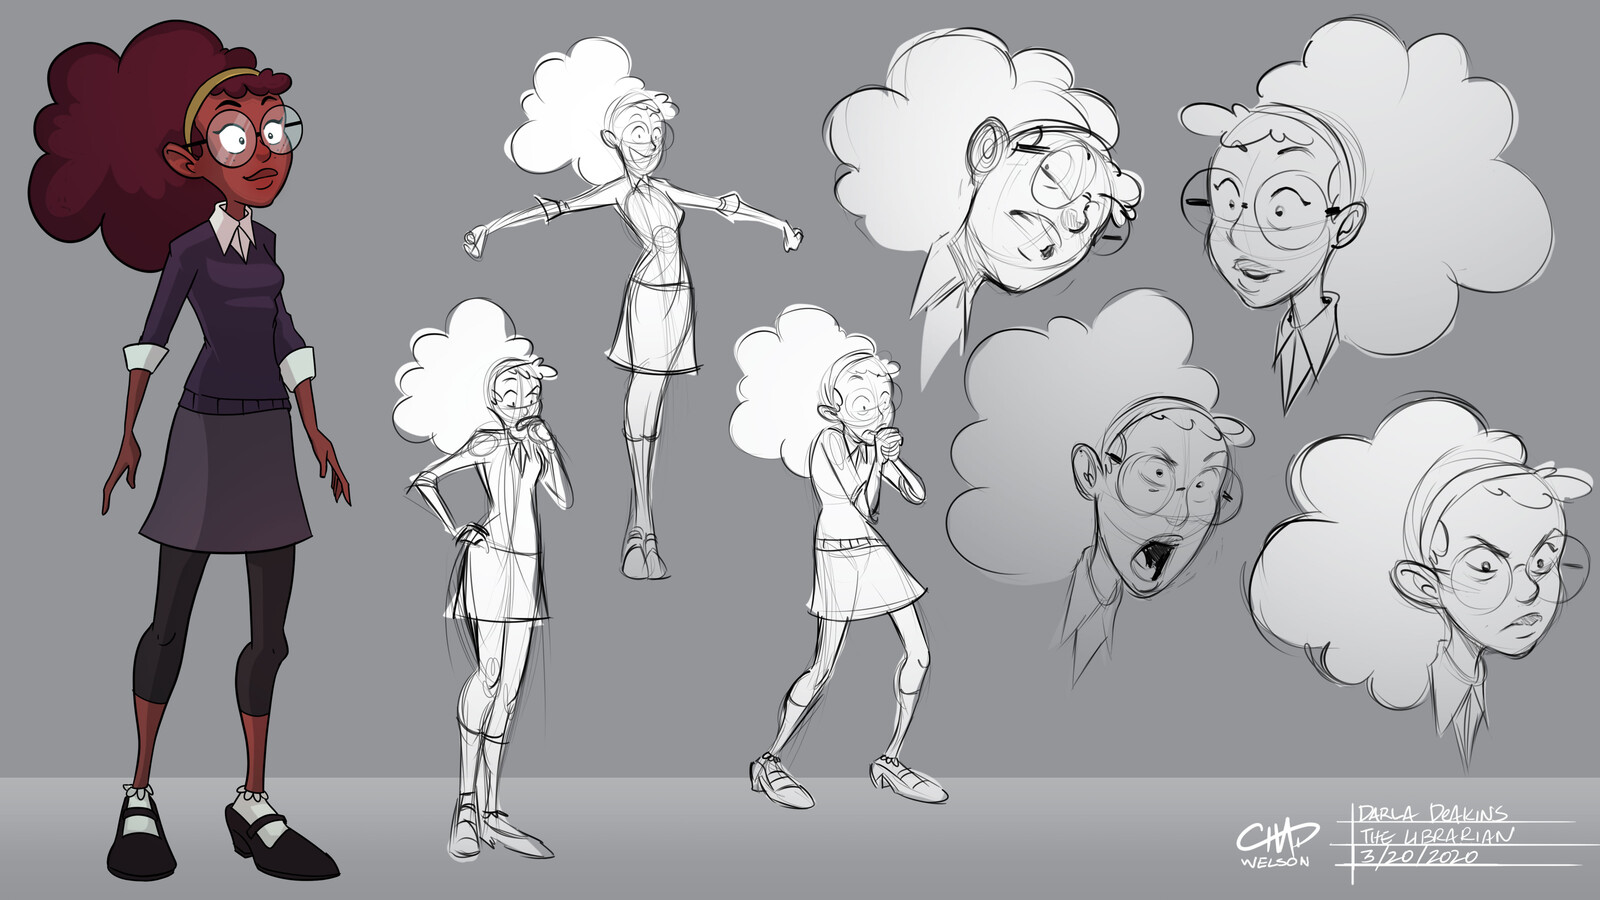 Character Design: Darla Deakins and the Dewey Decimal System